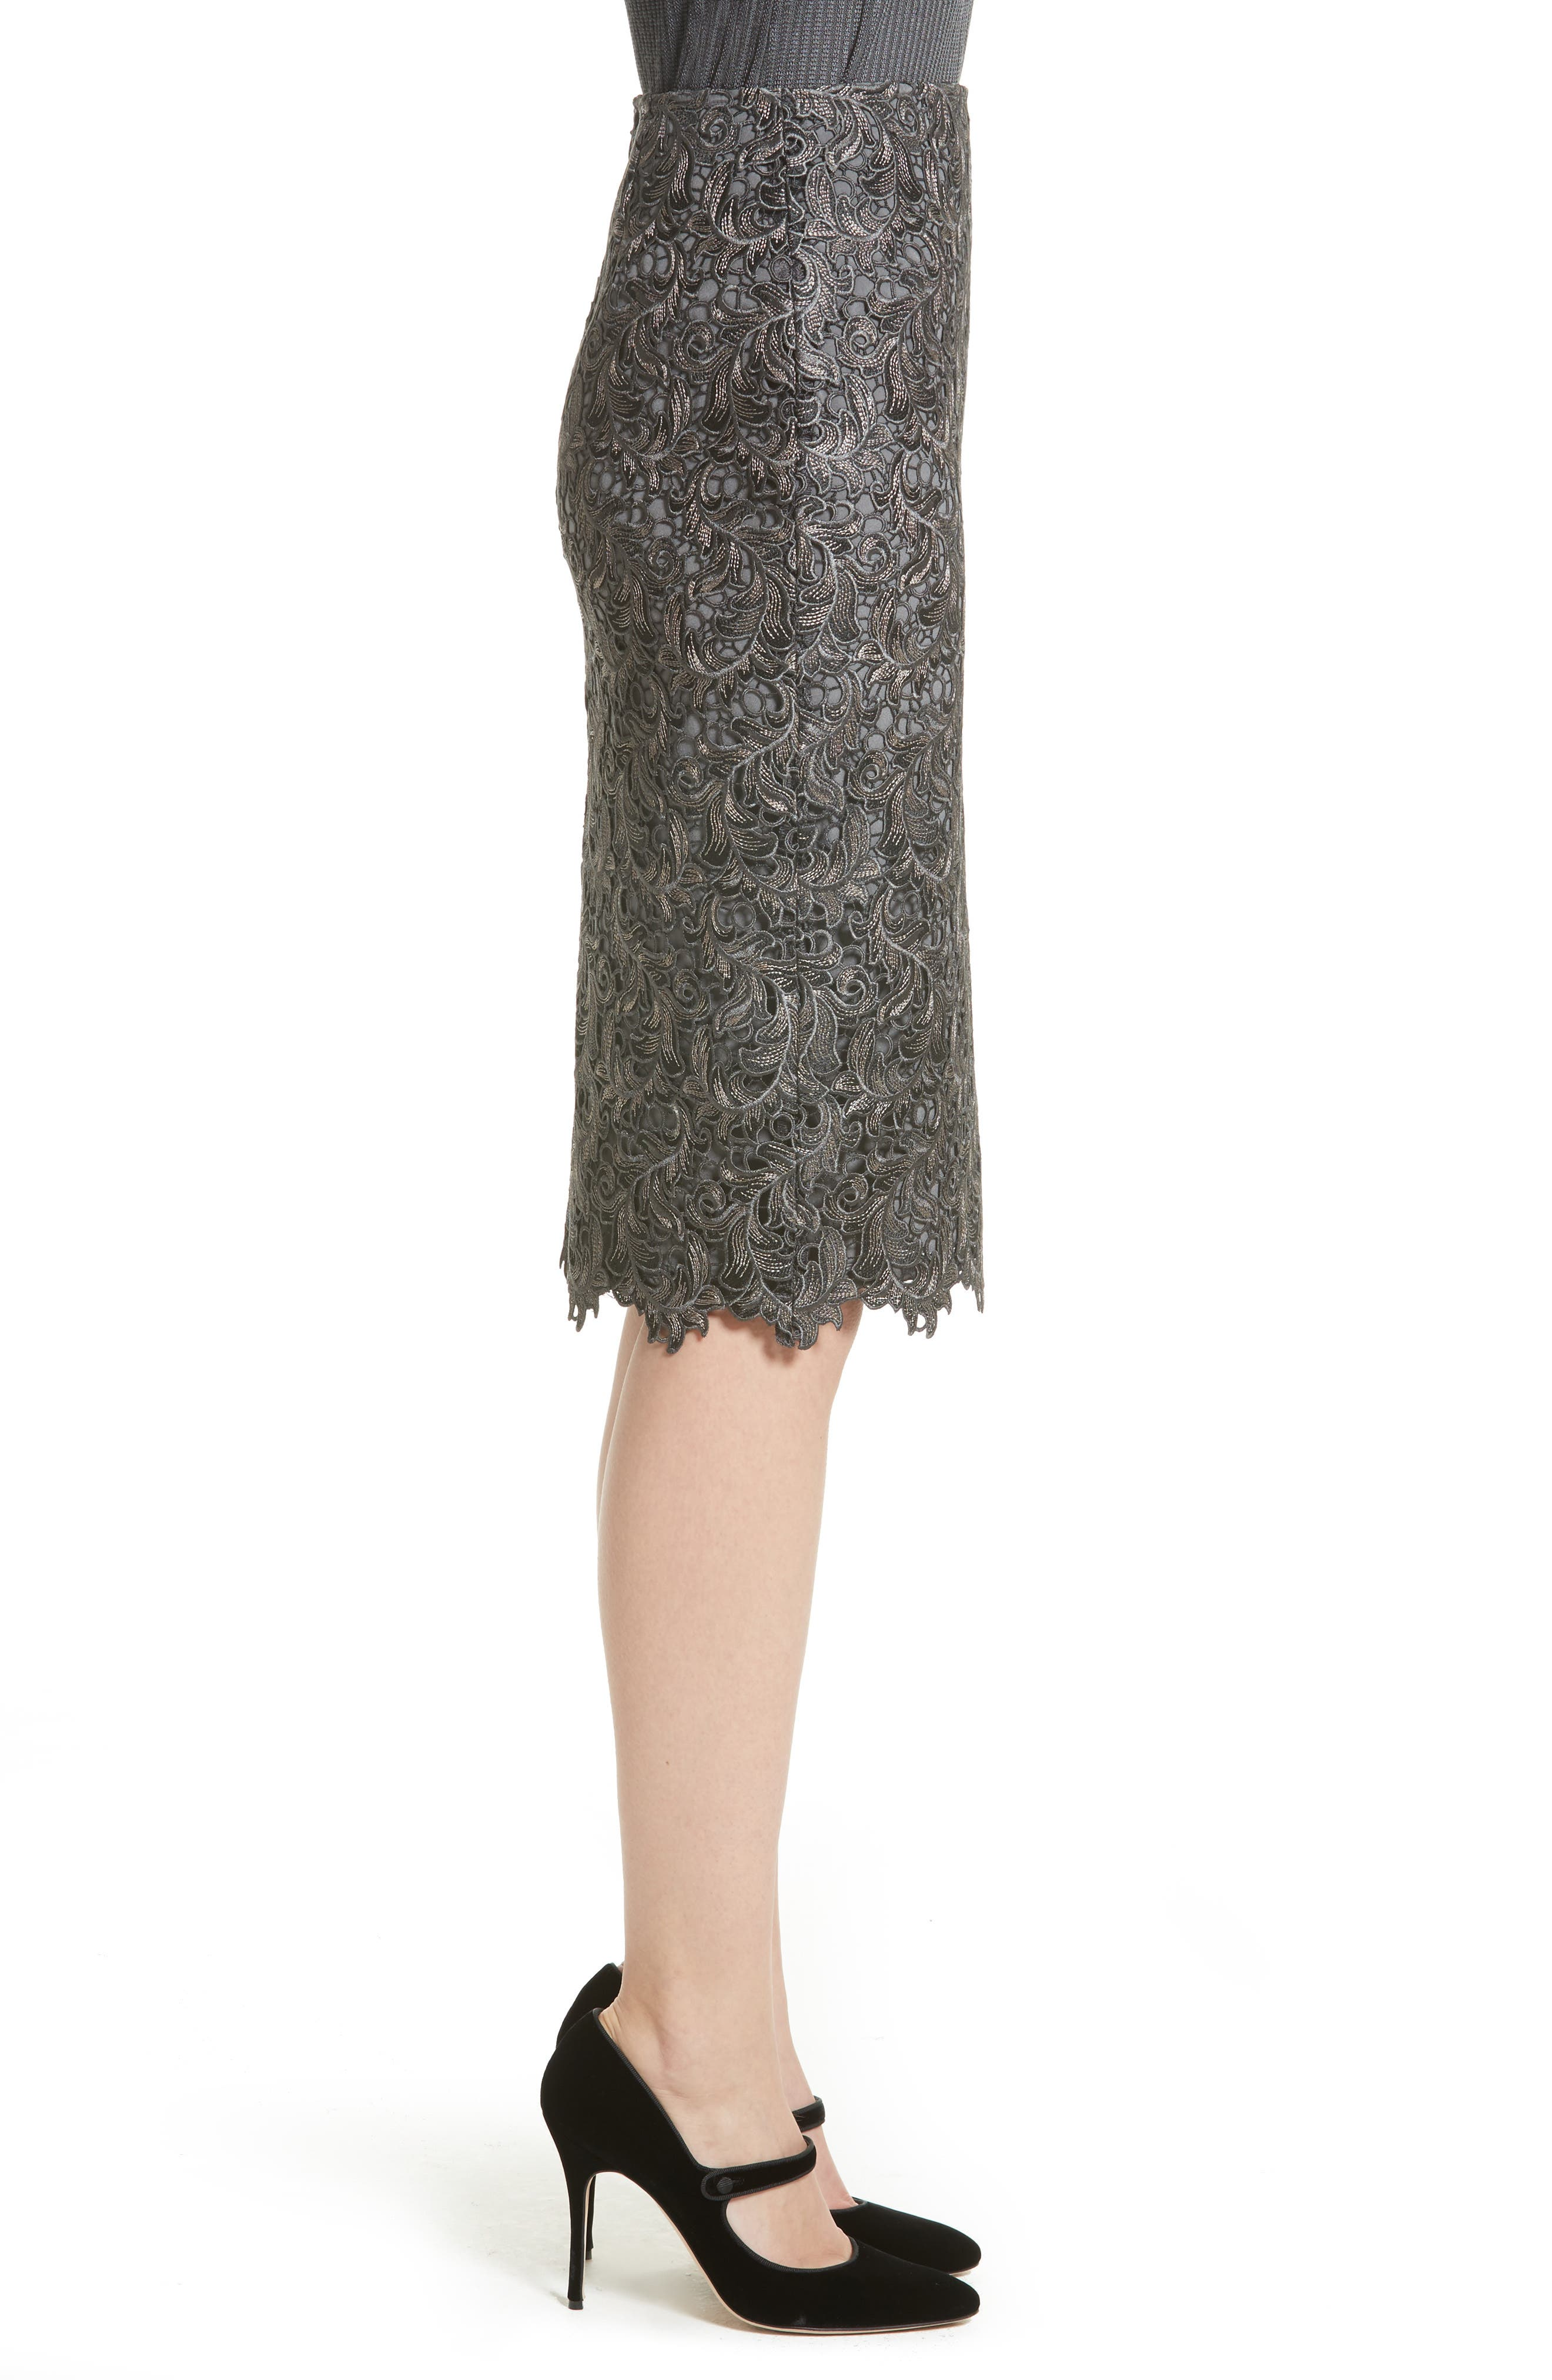 Plume Embroidered Lace Pencil Skirt,                             Alternate thumbnail 3, color,                             030